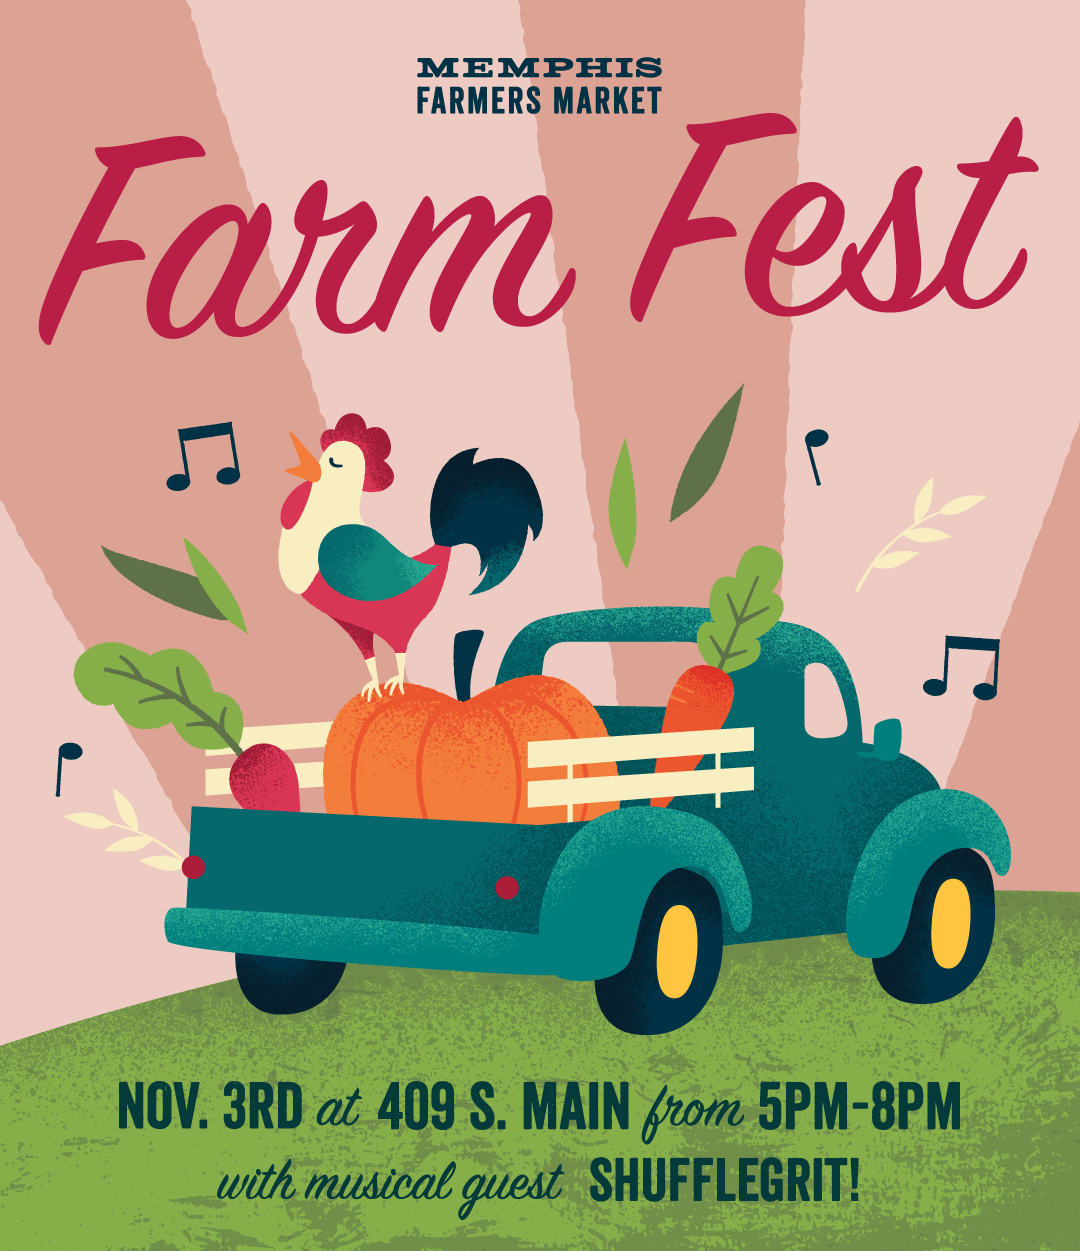 MFM_FarmFest_EventsPageGraphic.png